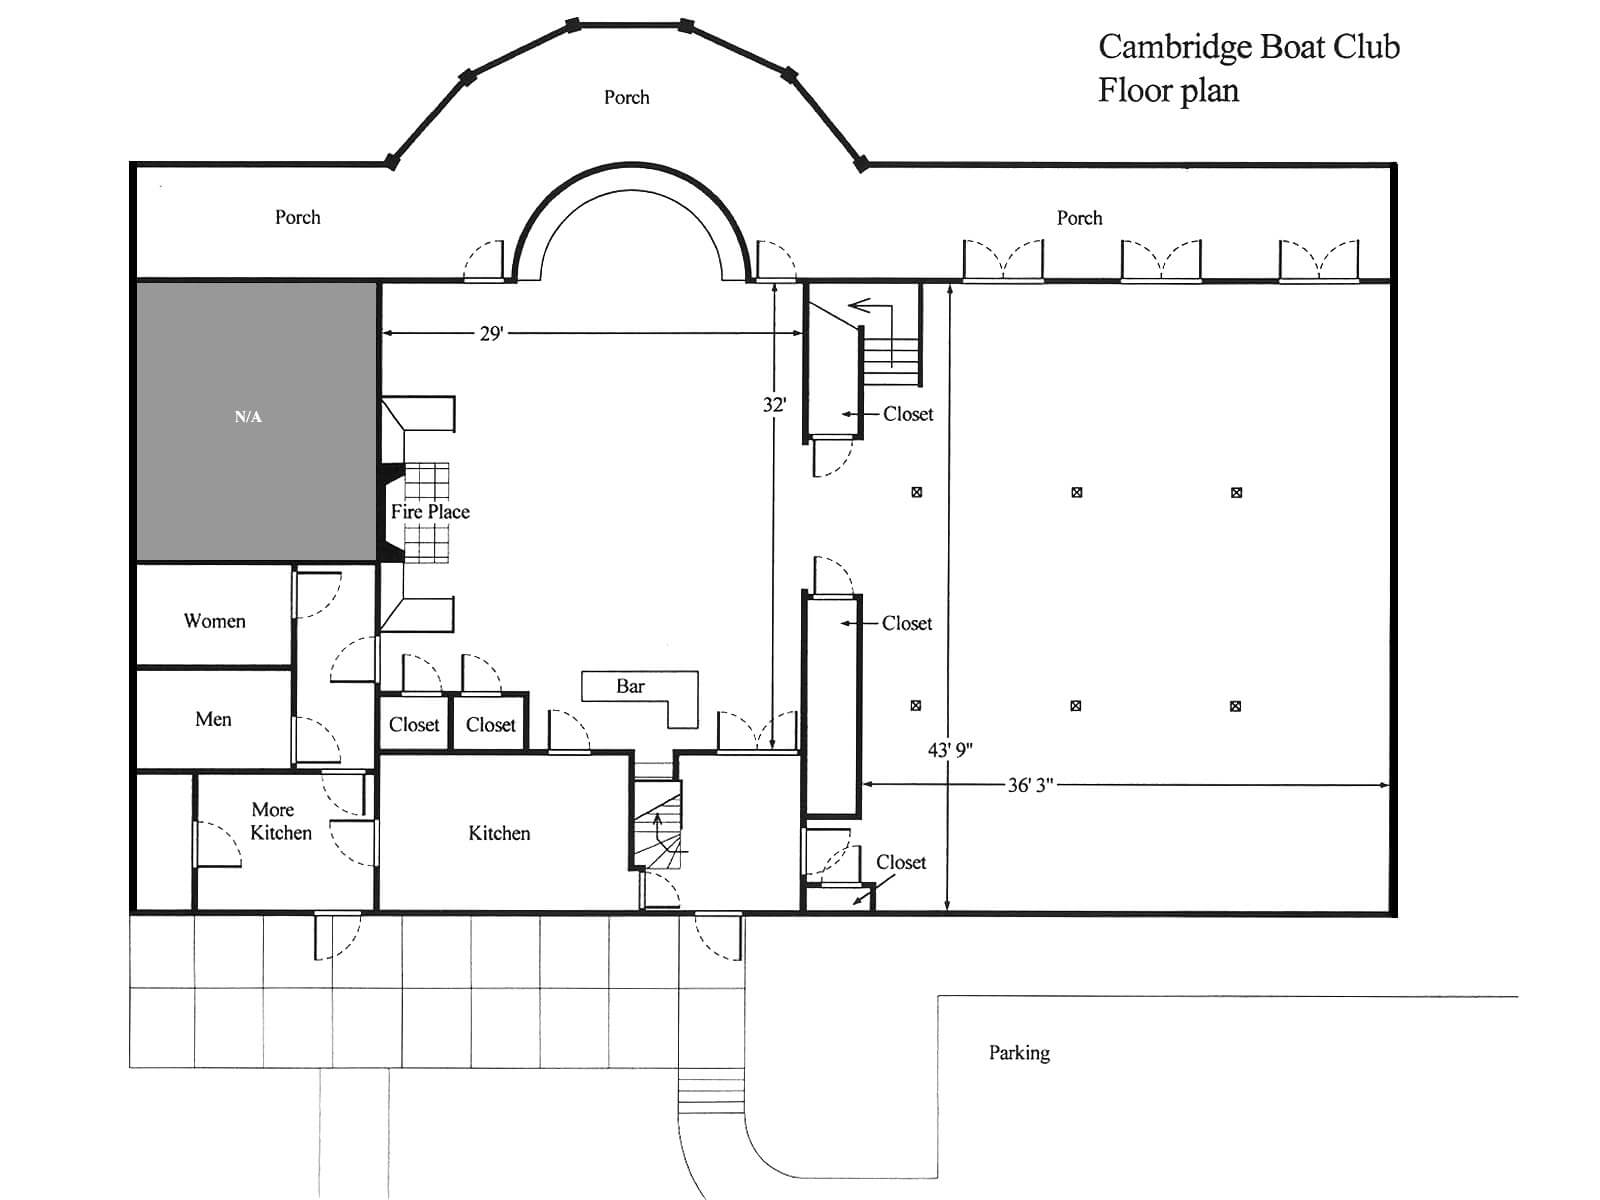 Floor plan of the cambridge boat club cambridge boat club for Nightclub floor plans